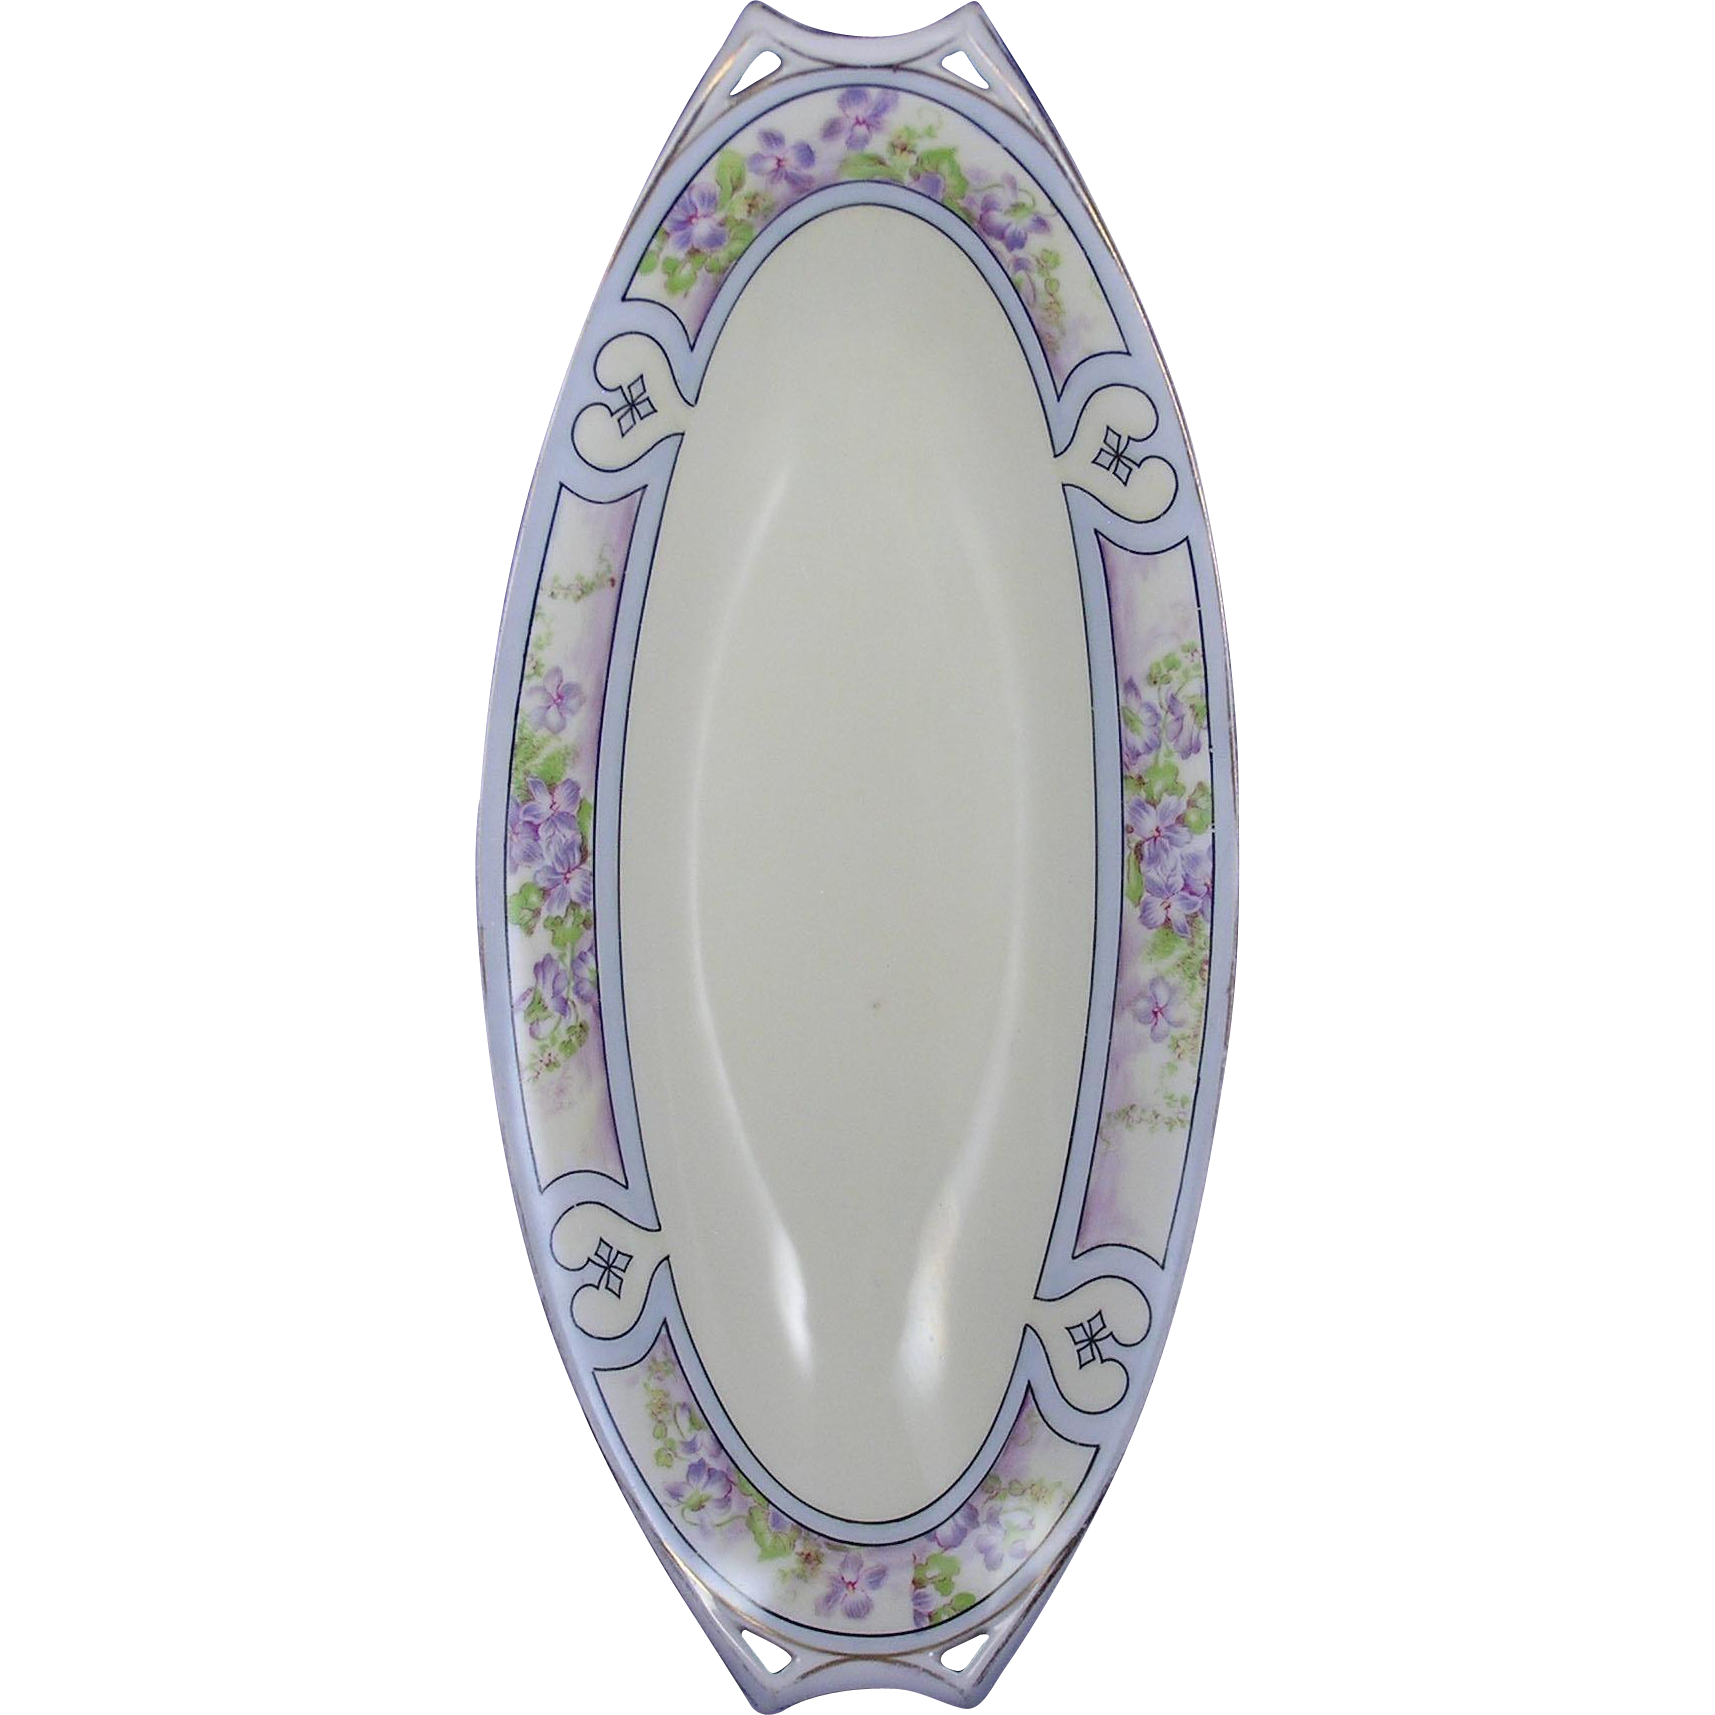 Hutschenreuther Bavaria Arts & Crafts Violet Motif Serving Dish (c.1930-1940)